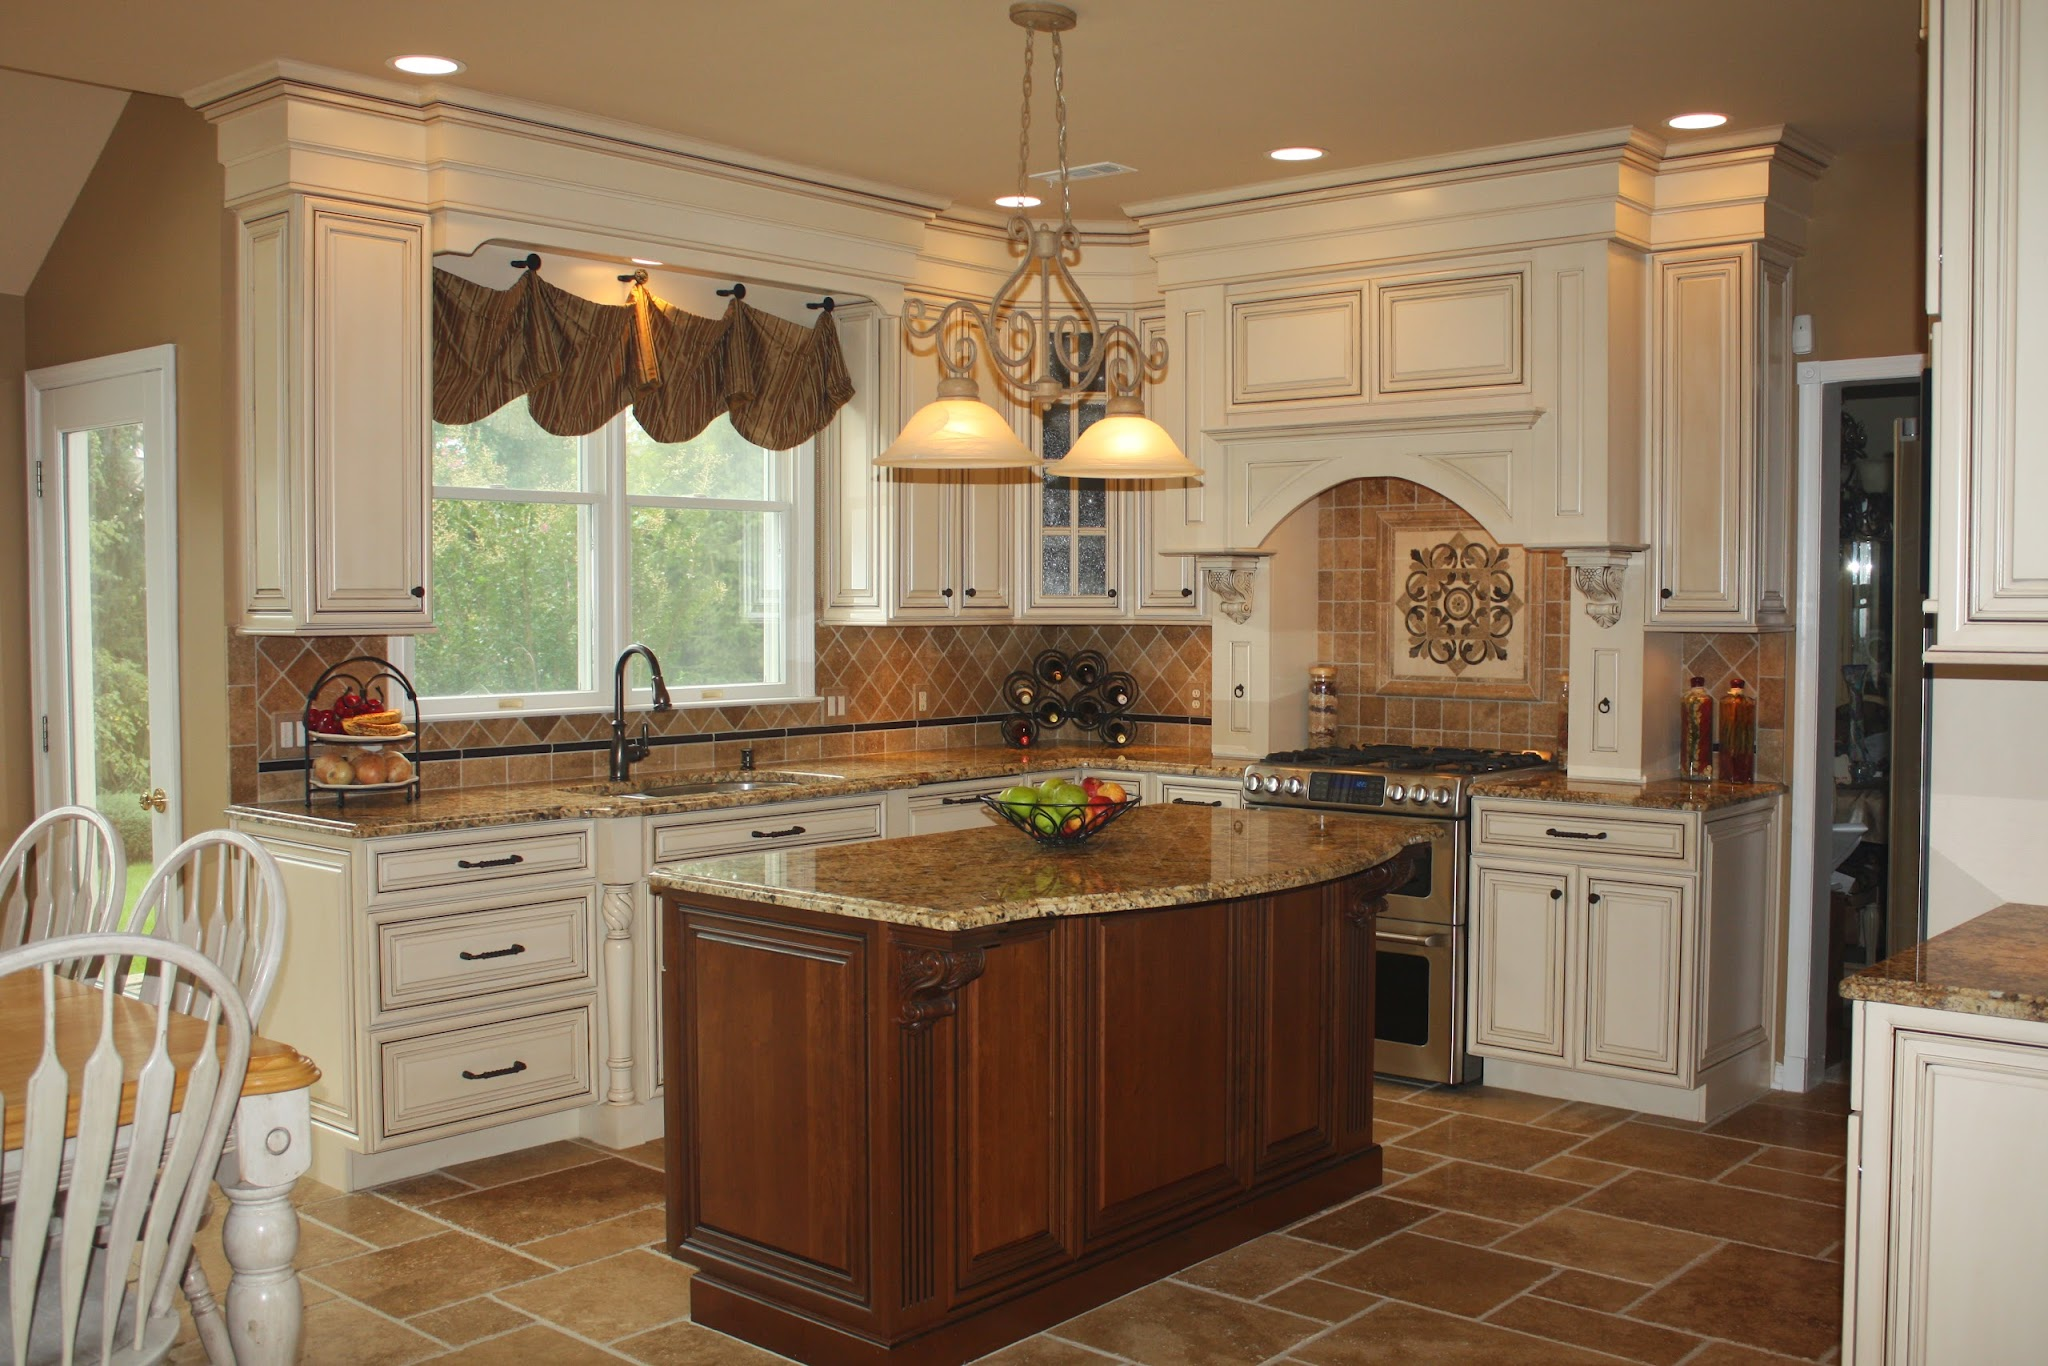 Houzz kitchen dreams house furniture for Kitchen cabinet remodel